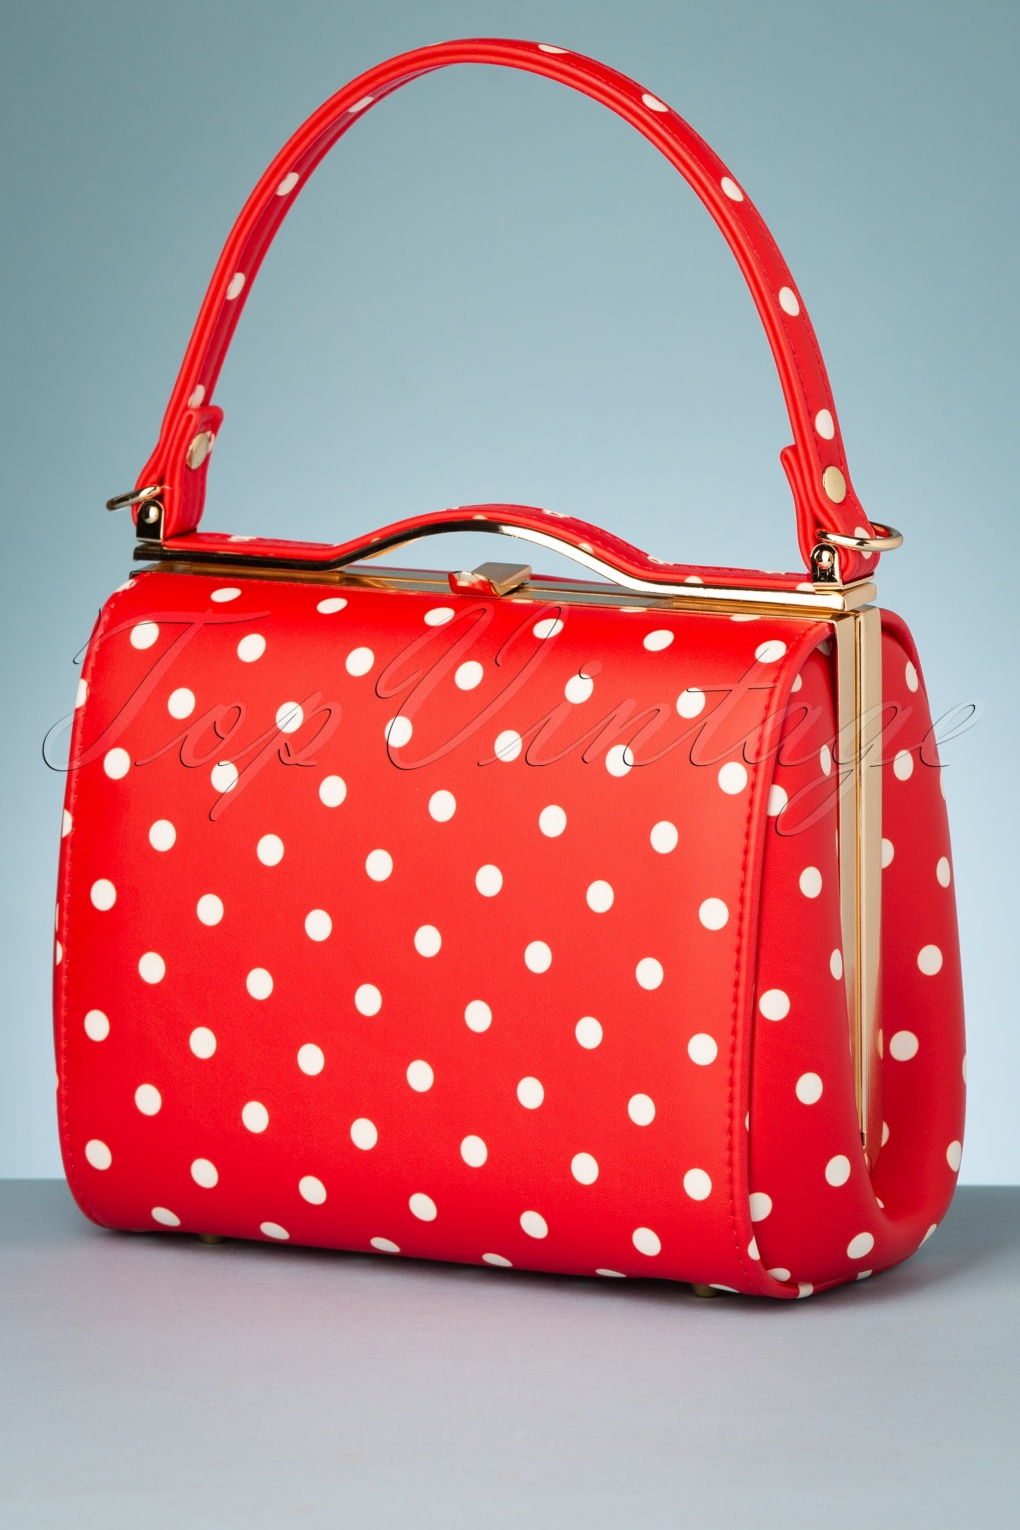 1950s Handbags, Purses, and Evening Bag Styles 60s Carrie Polka Dot Bag in Red £38.91 AT vintagedancer.com